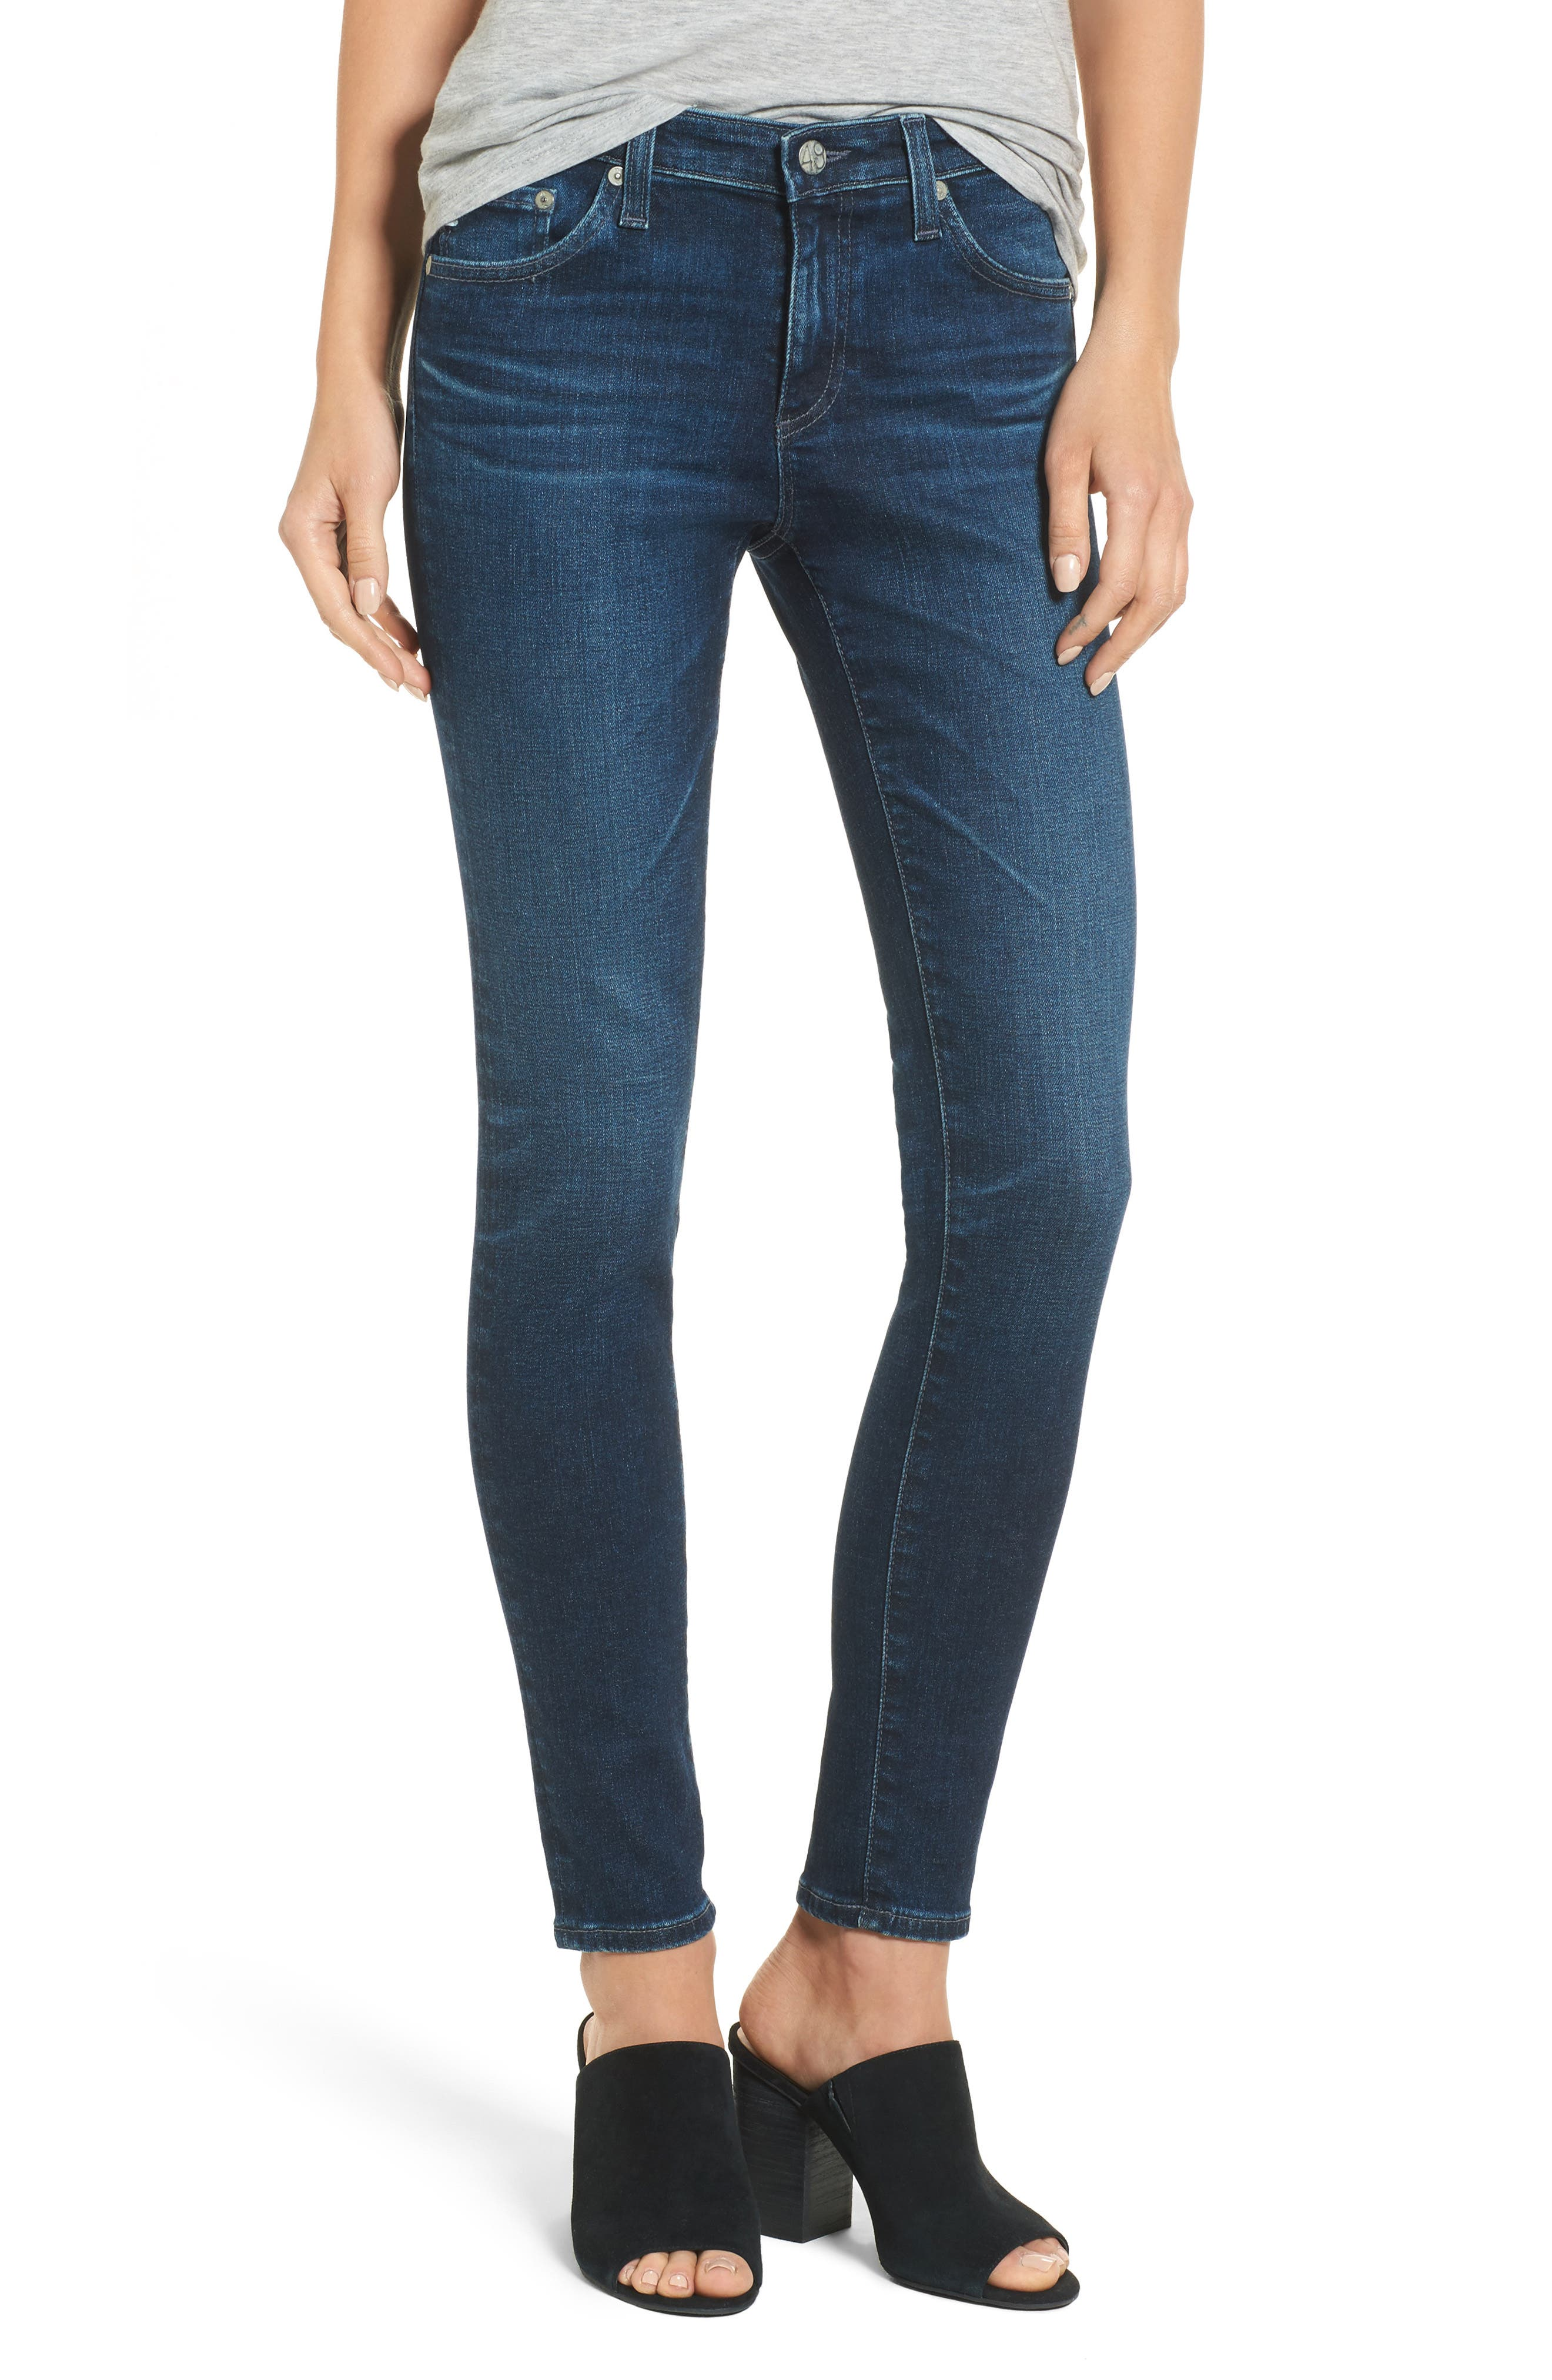 Alternate Image 1 Selected - AG The Legging Ankle Super Skinny Jeans (04 Years Rapid)